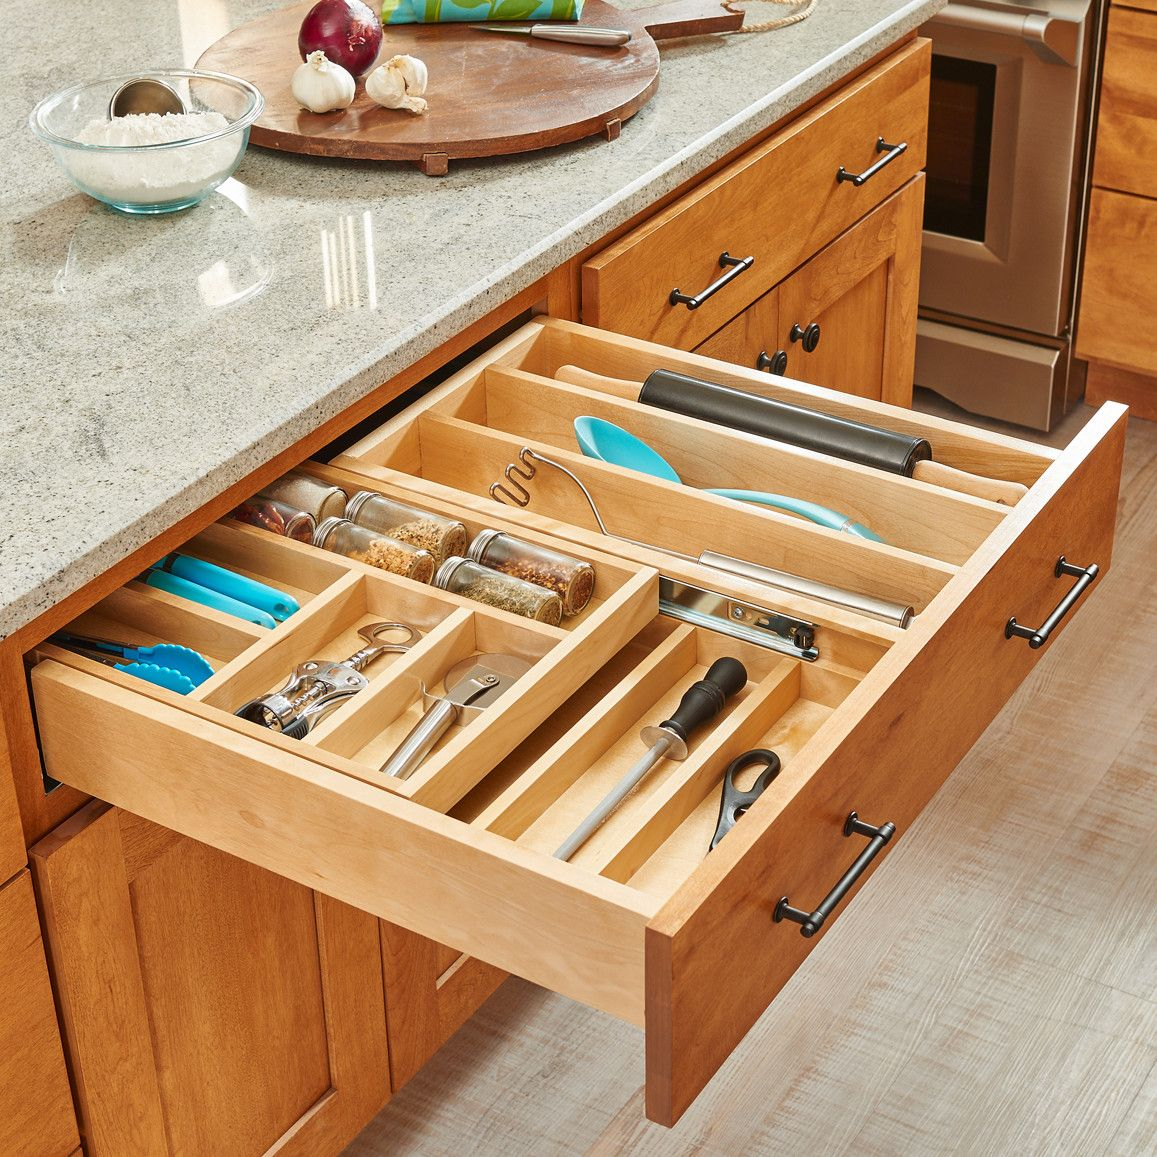 2 Tiered Wood Cutlery Pull Out Drawer Cutlery Drawer Rev A Shelf Kitchen Design